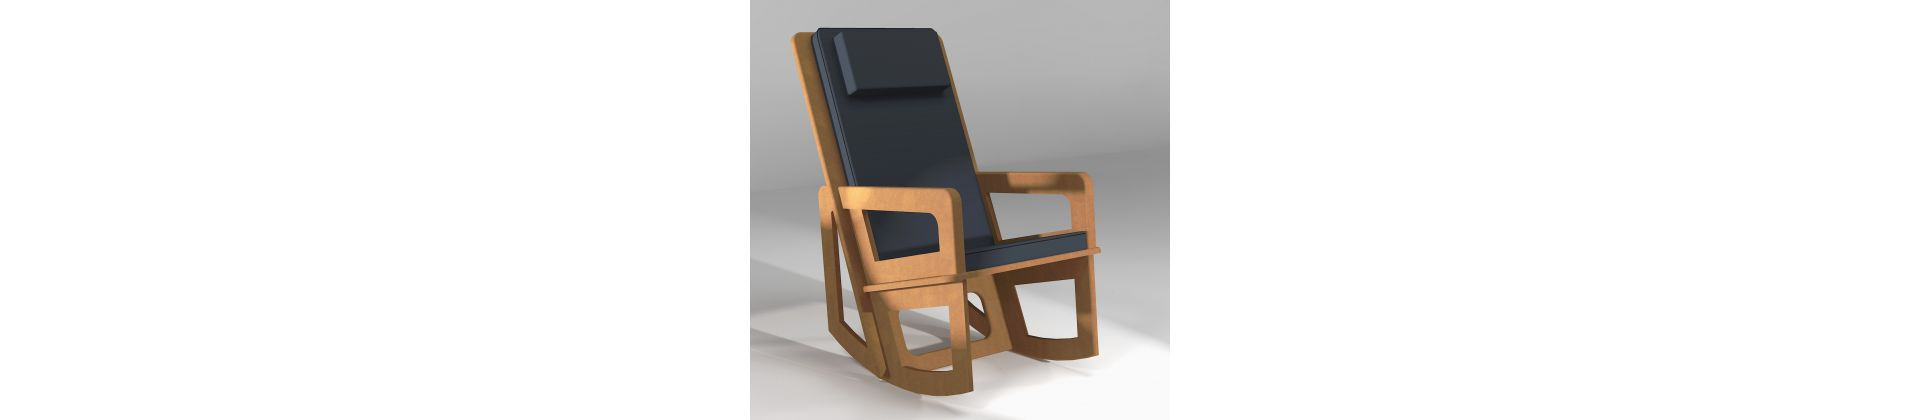 Rocking chair senior